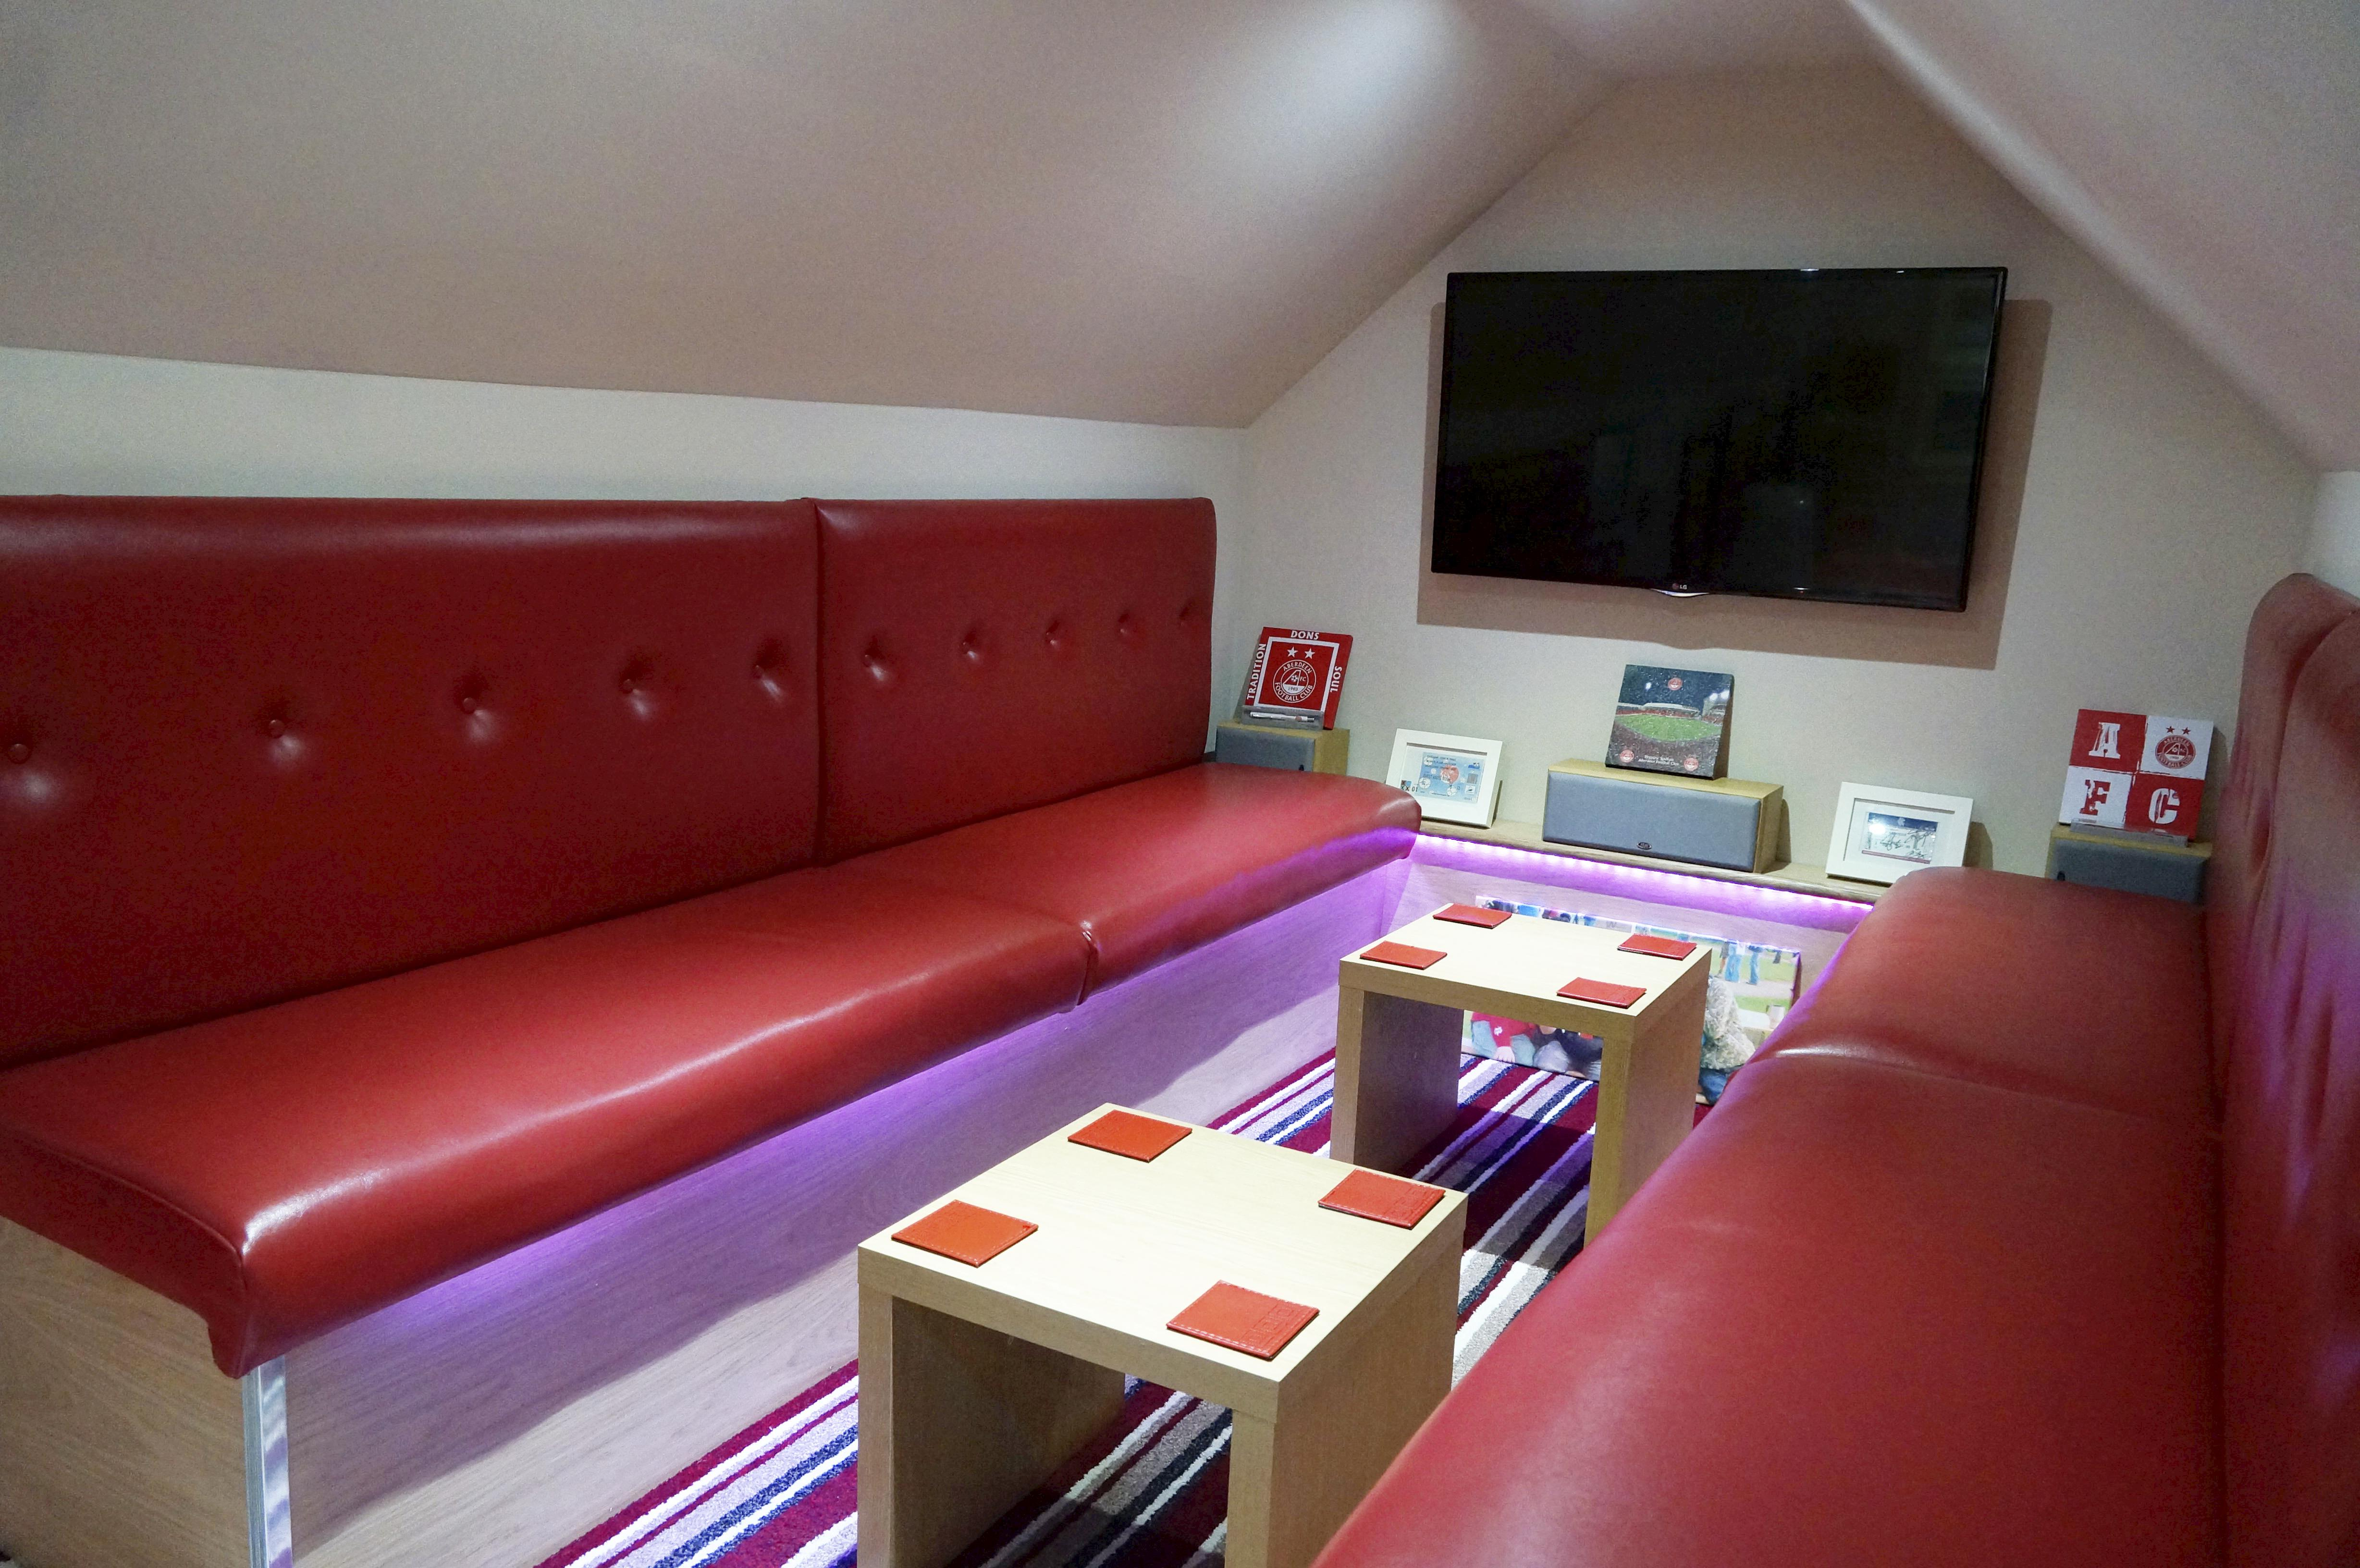 Man Cave Yahoo Answers : Lofty ambitions see inside britain s best man cave